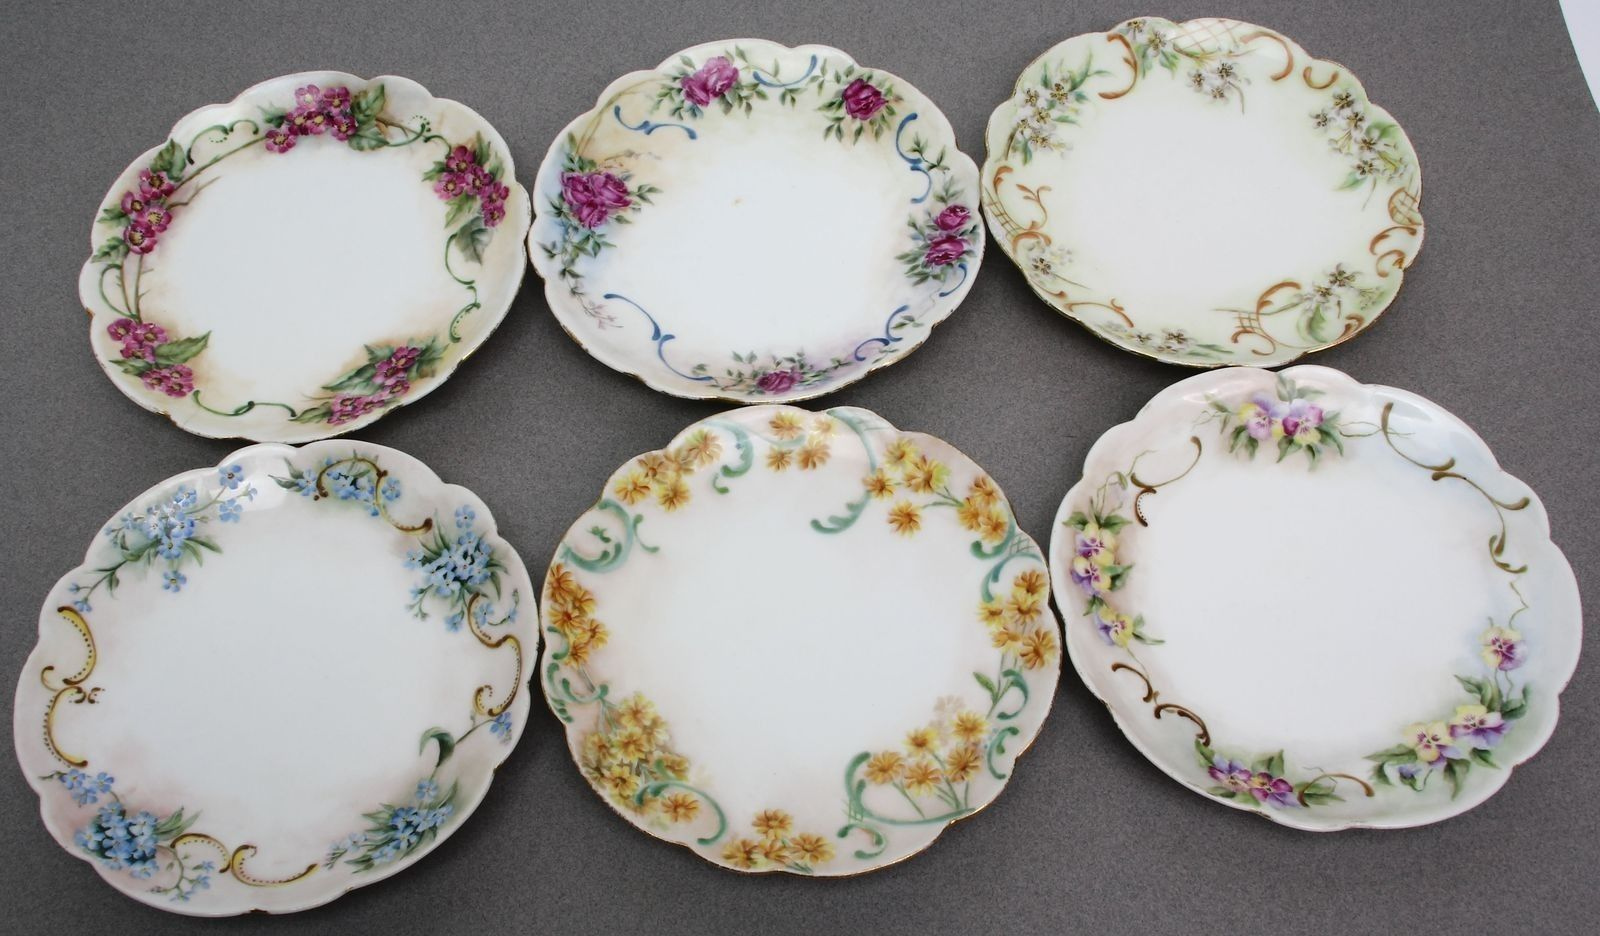 Lot of 6 Small Decorative Plates Elite France Limoges Signed M A Howard | eBay & Lot of 6 Small Decorative Plates Elite France Limoges Signed M A ...